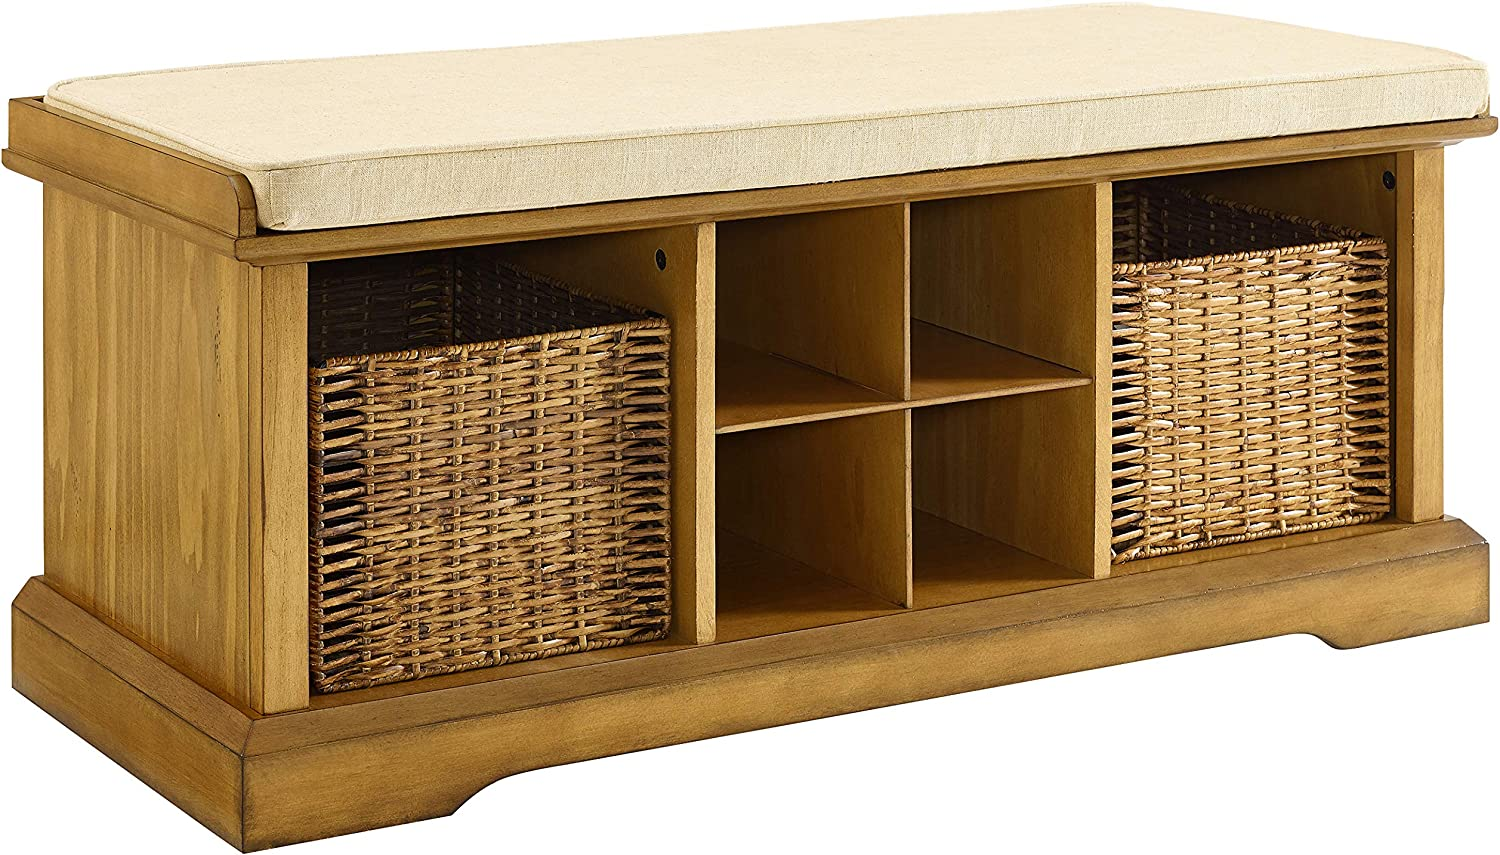 Crosley Furniture Brennan Entryway Storage Bench with Wicker Baskets and Cushion, Natural